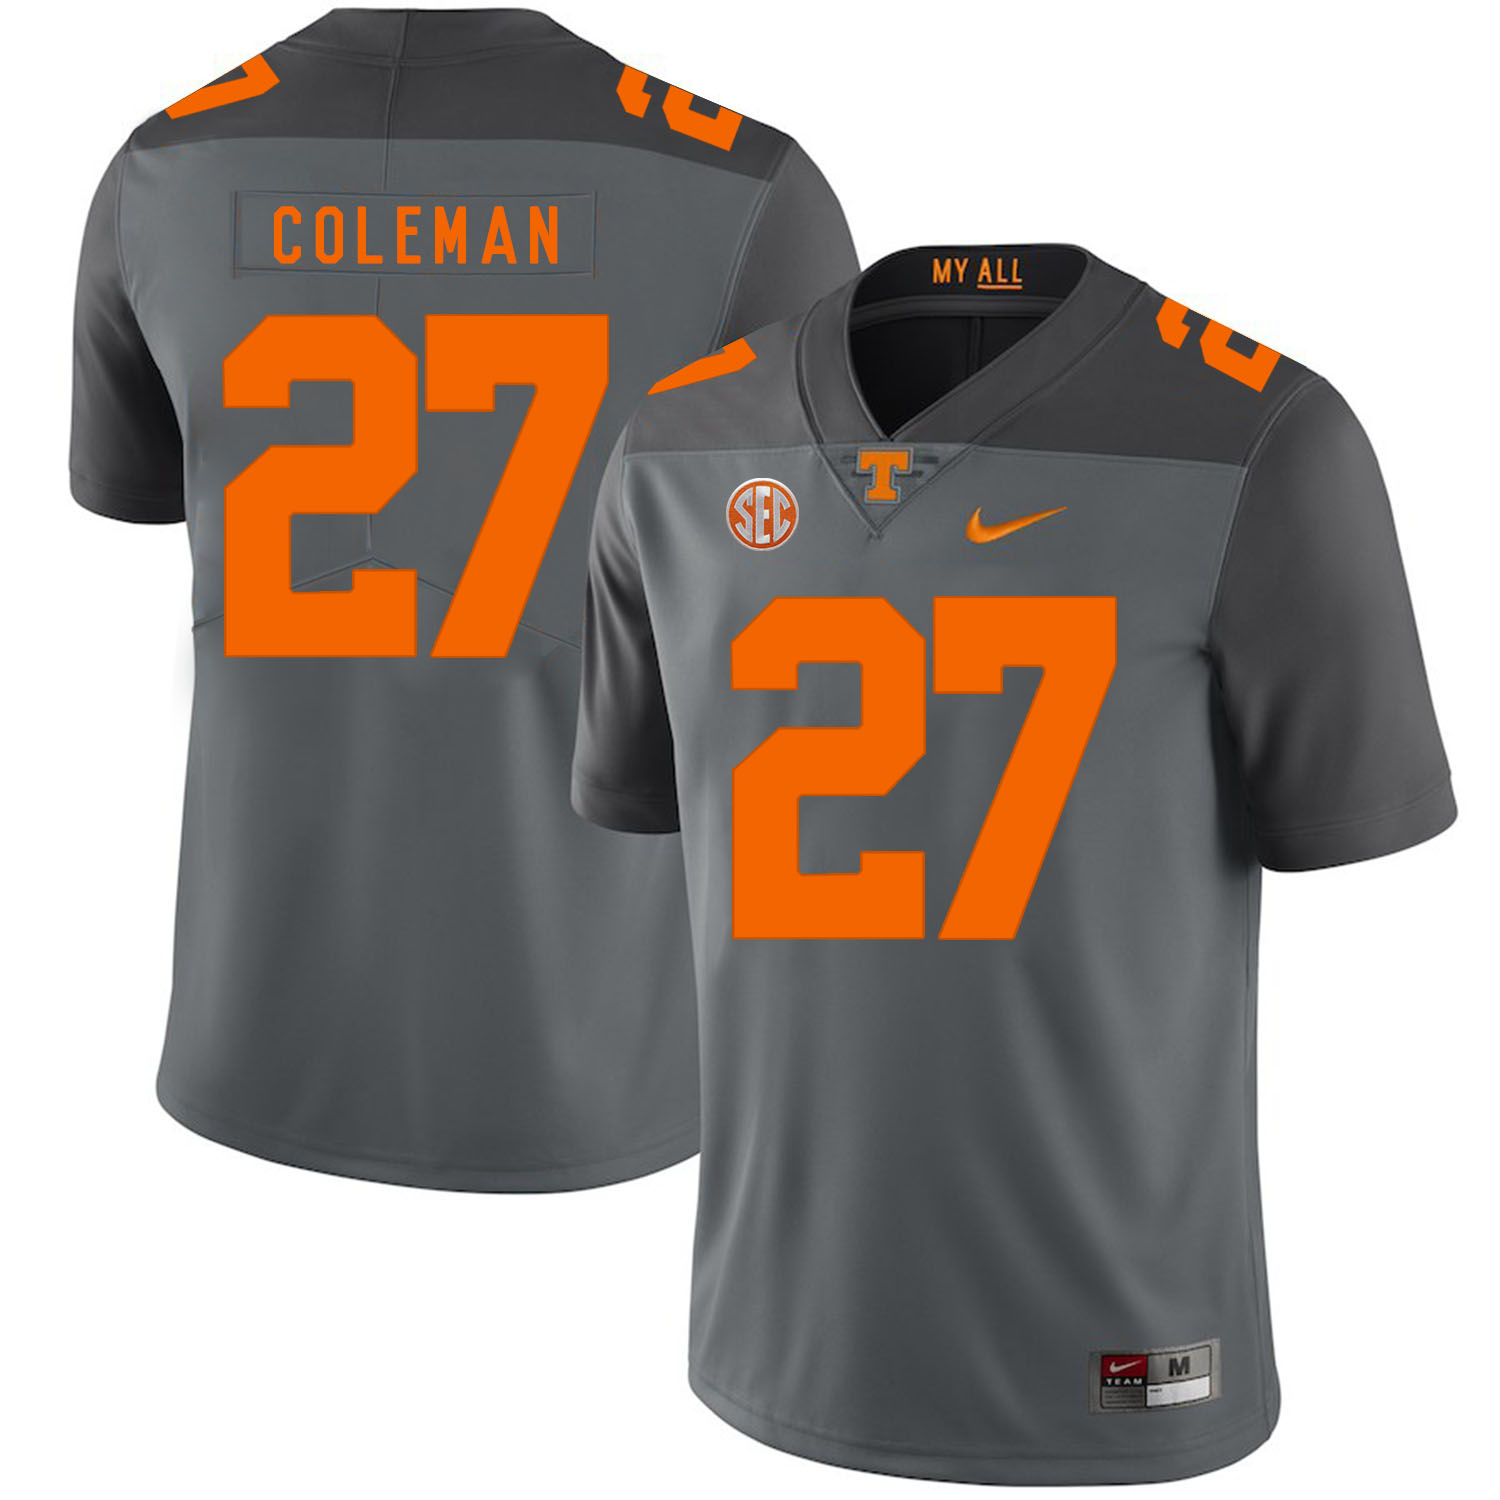 Tennessee Volunteers 27 Justin Coleman Gray Nike College Football Jersey